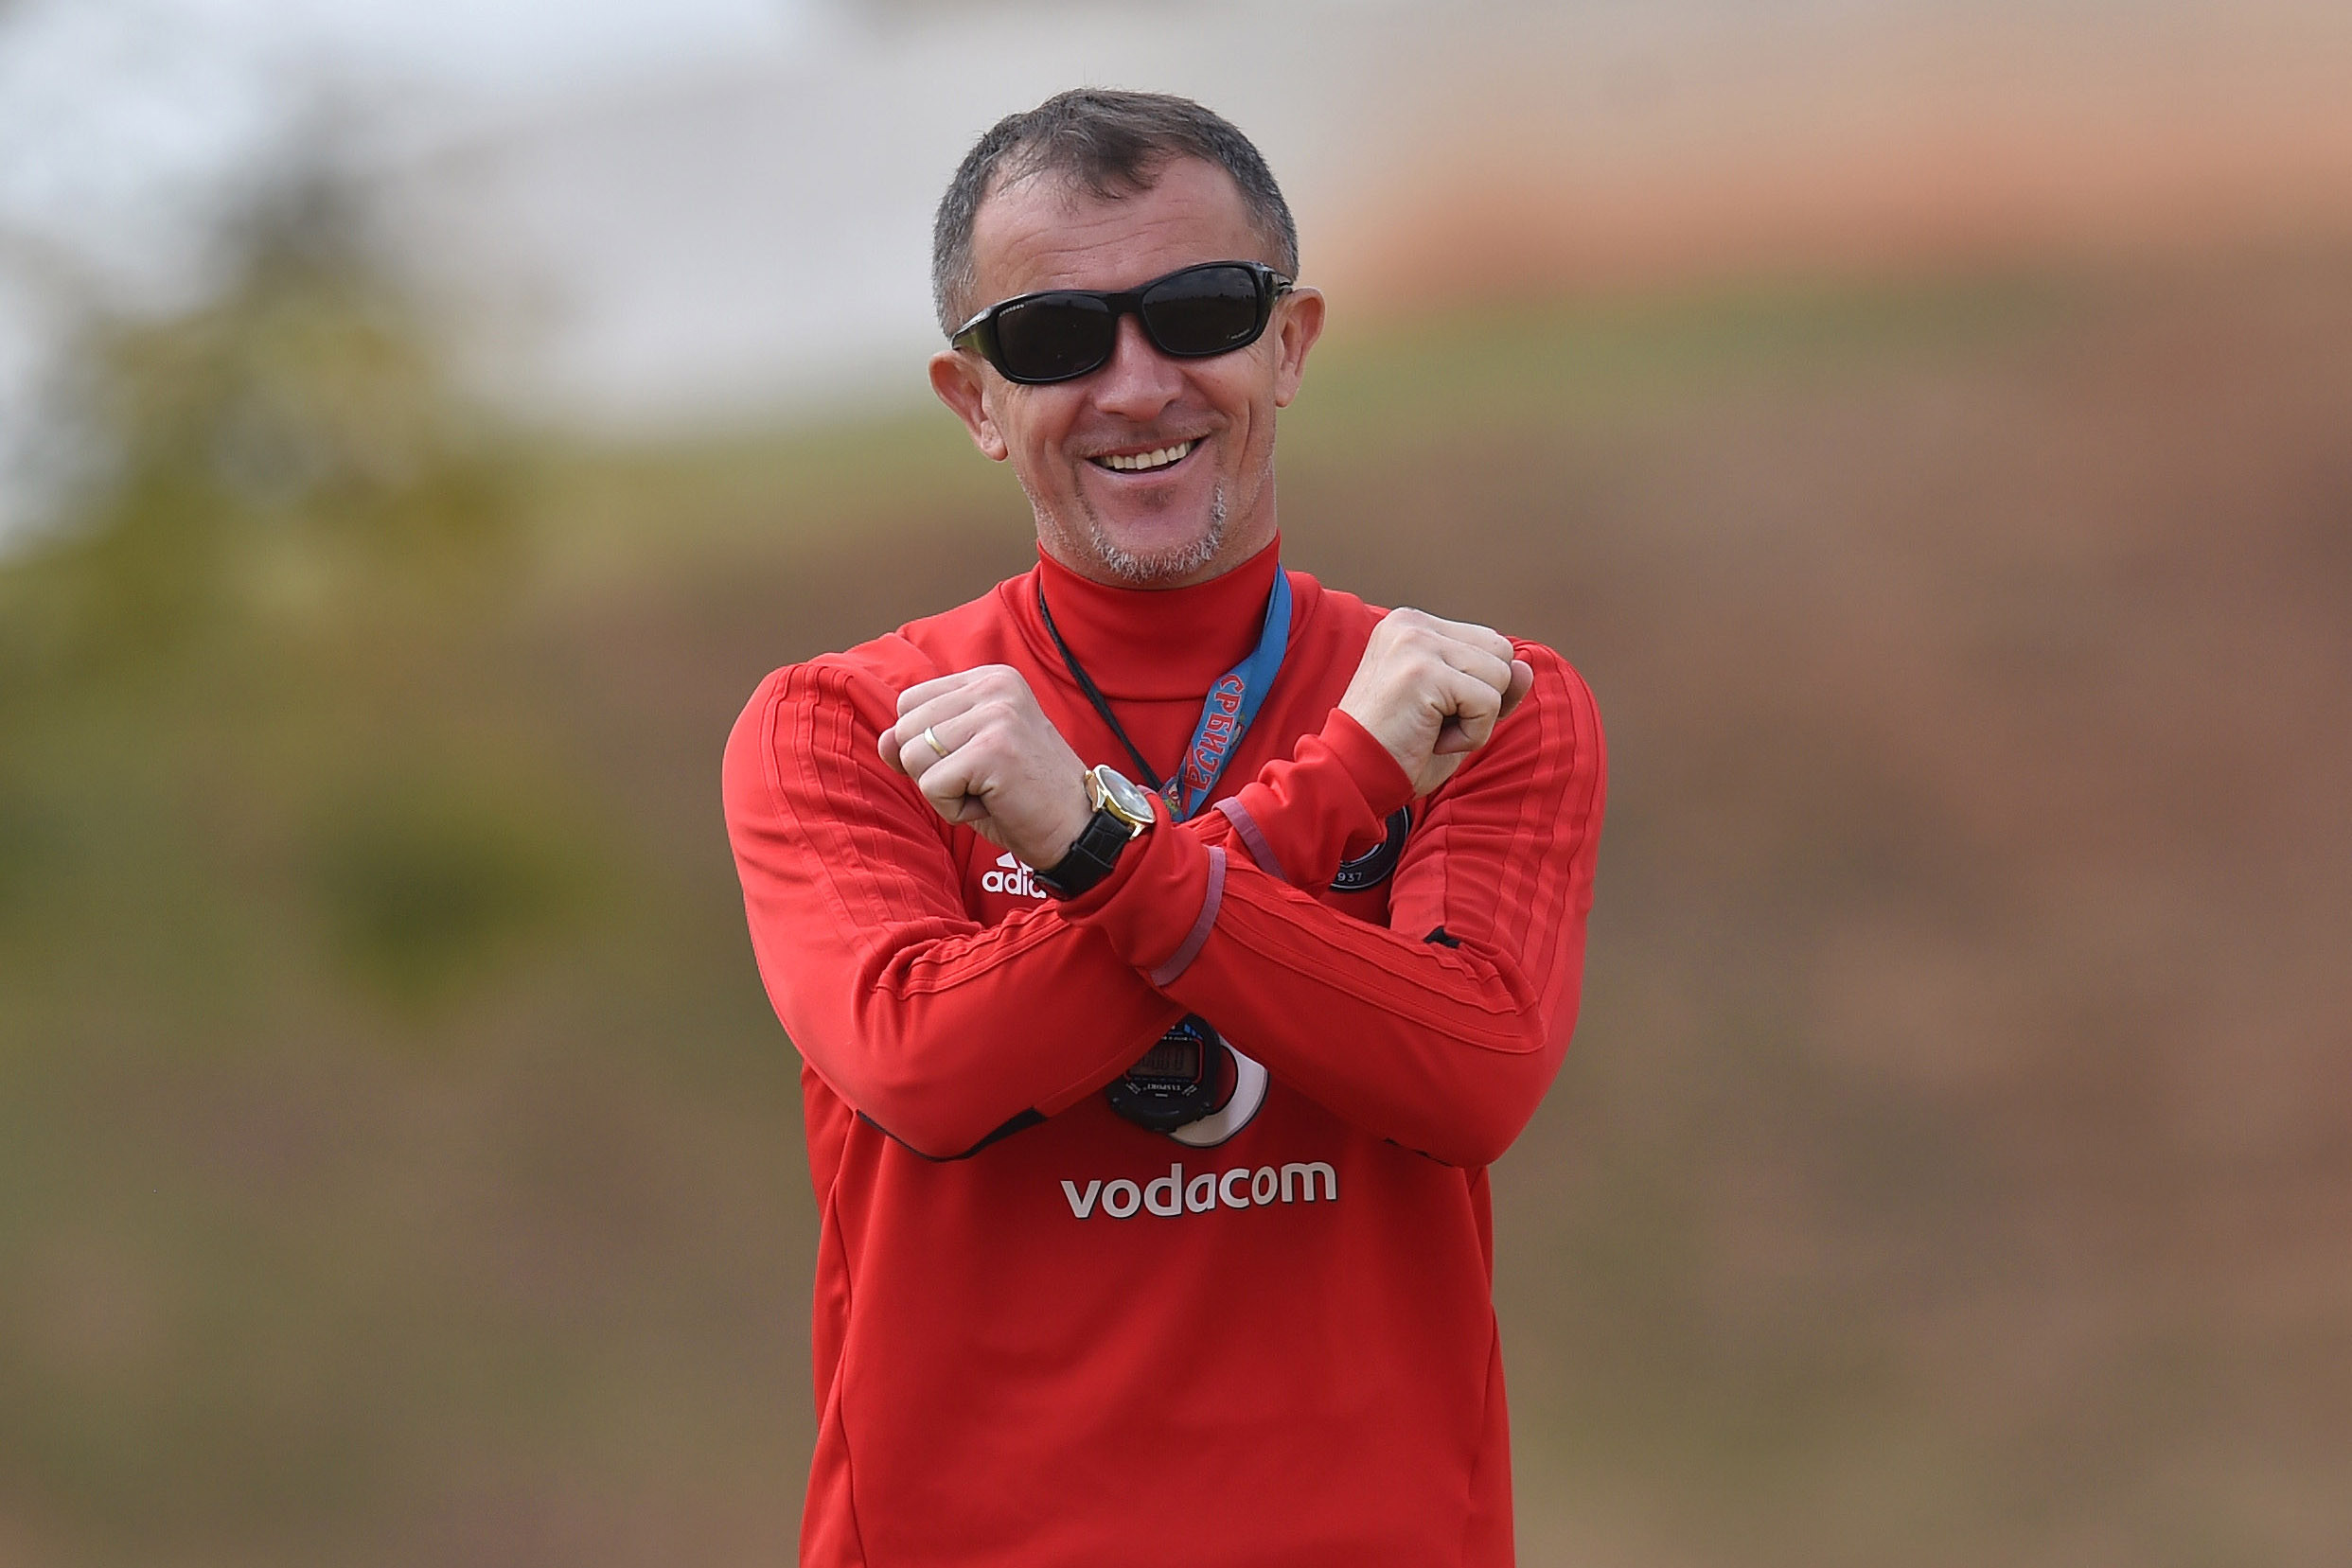 Orlando Pirates coach Milutin Sredojevic is first and foremost a Buccaneers fan. Photograph by Thabang Lepule, courtesy of Orlando Pirates Football Club media